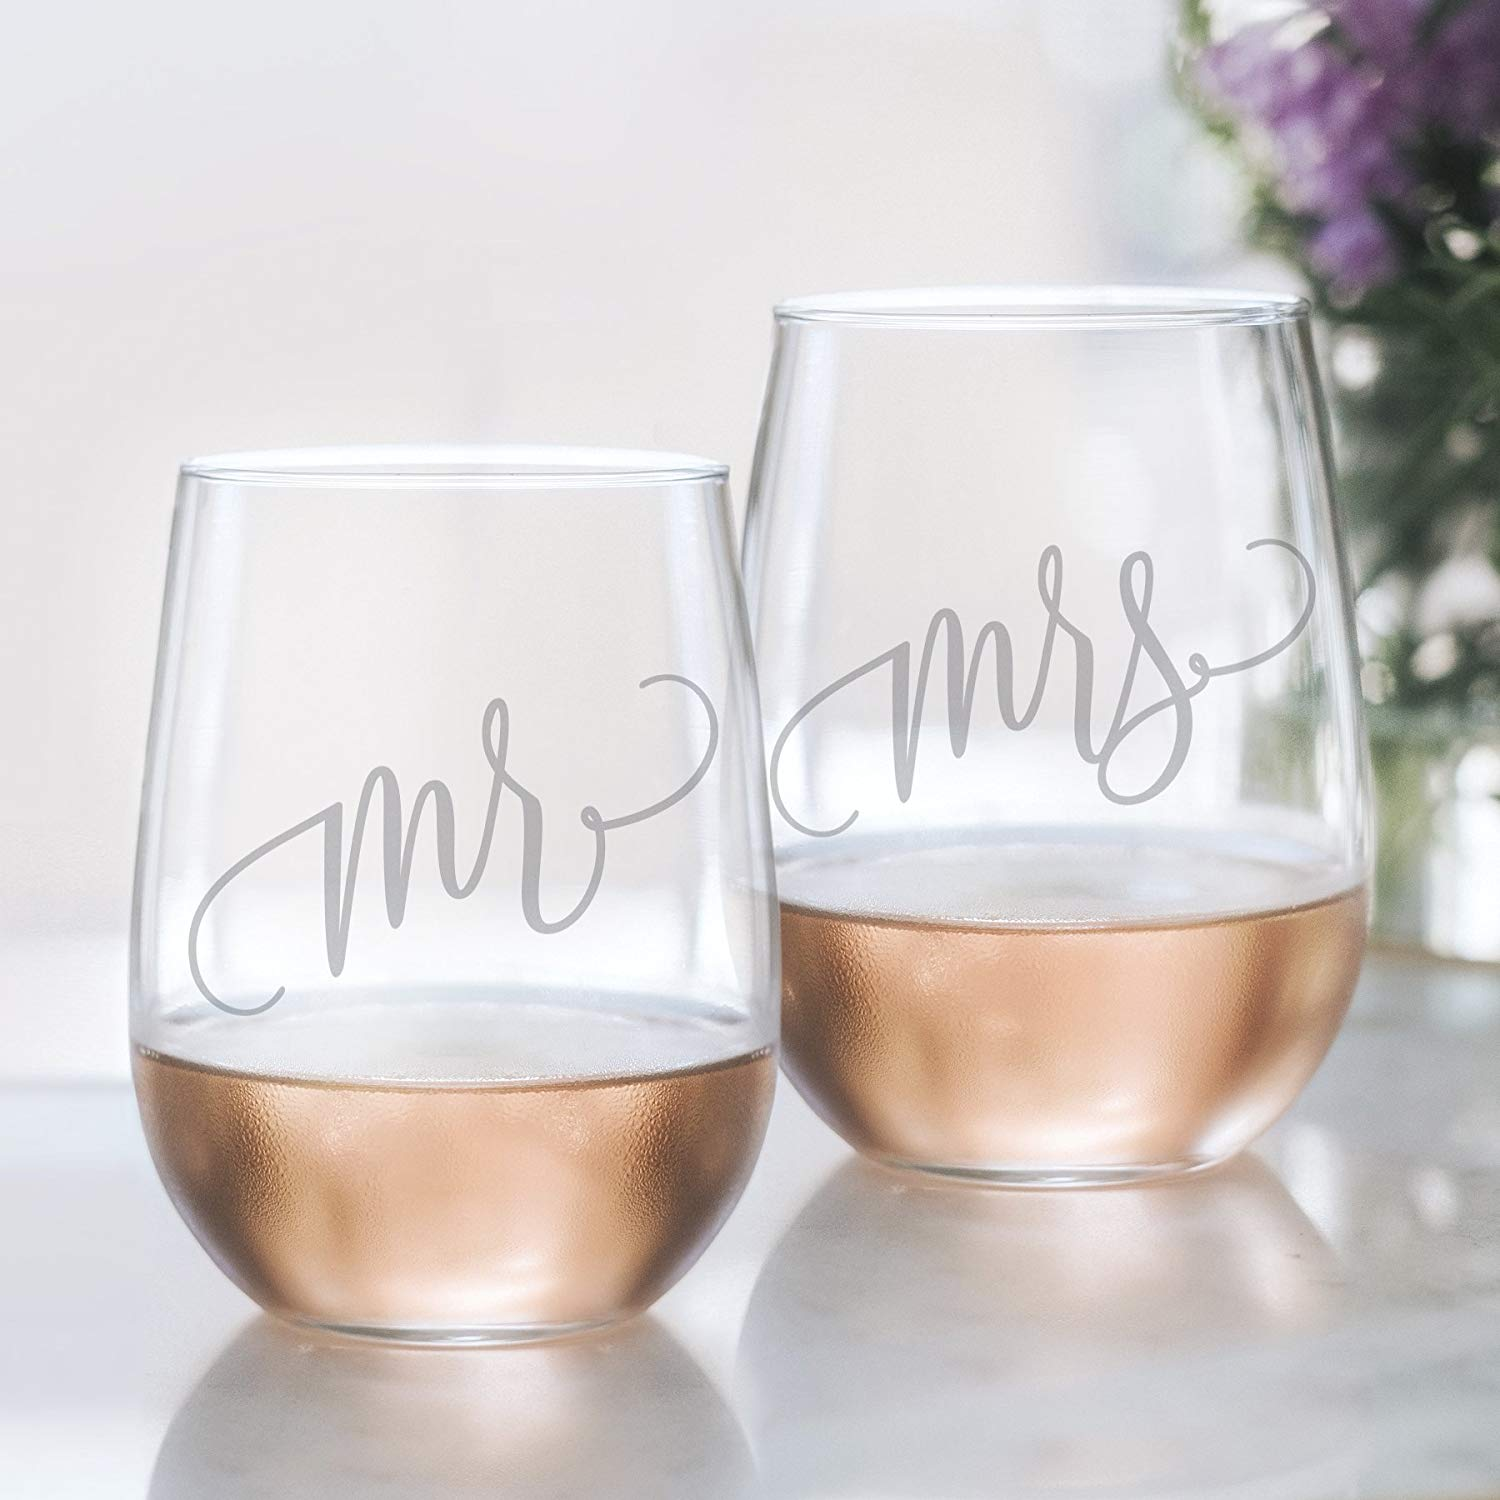 Mr and Mrs Wine Glass Set - 20oz Etched Stemless Wine Glasses for Couples. Perfect Engagement Party, Bridal Shower, Bachelorette Party or Wedding Gift from Bliss Paper Boutique (LEAD FREE & BPA FREE)